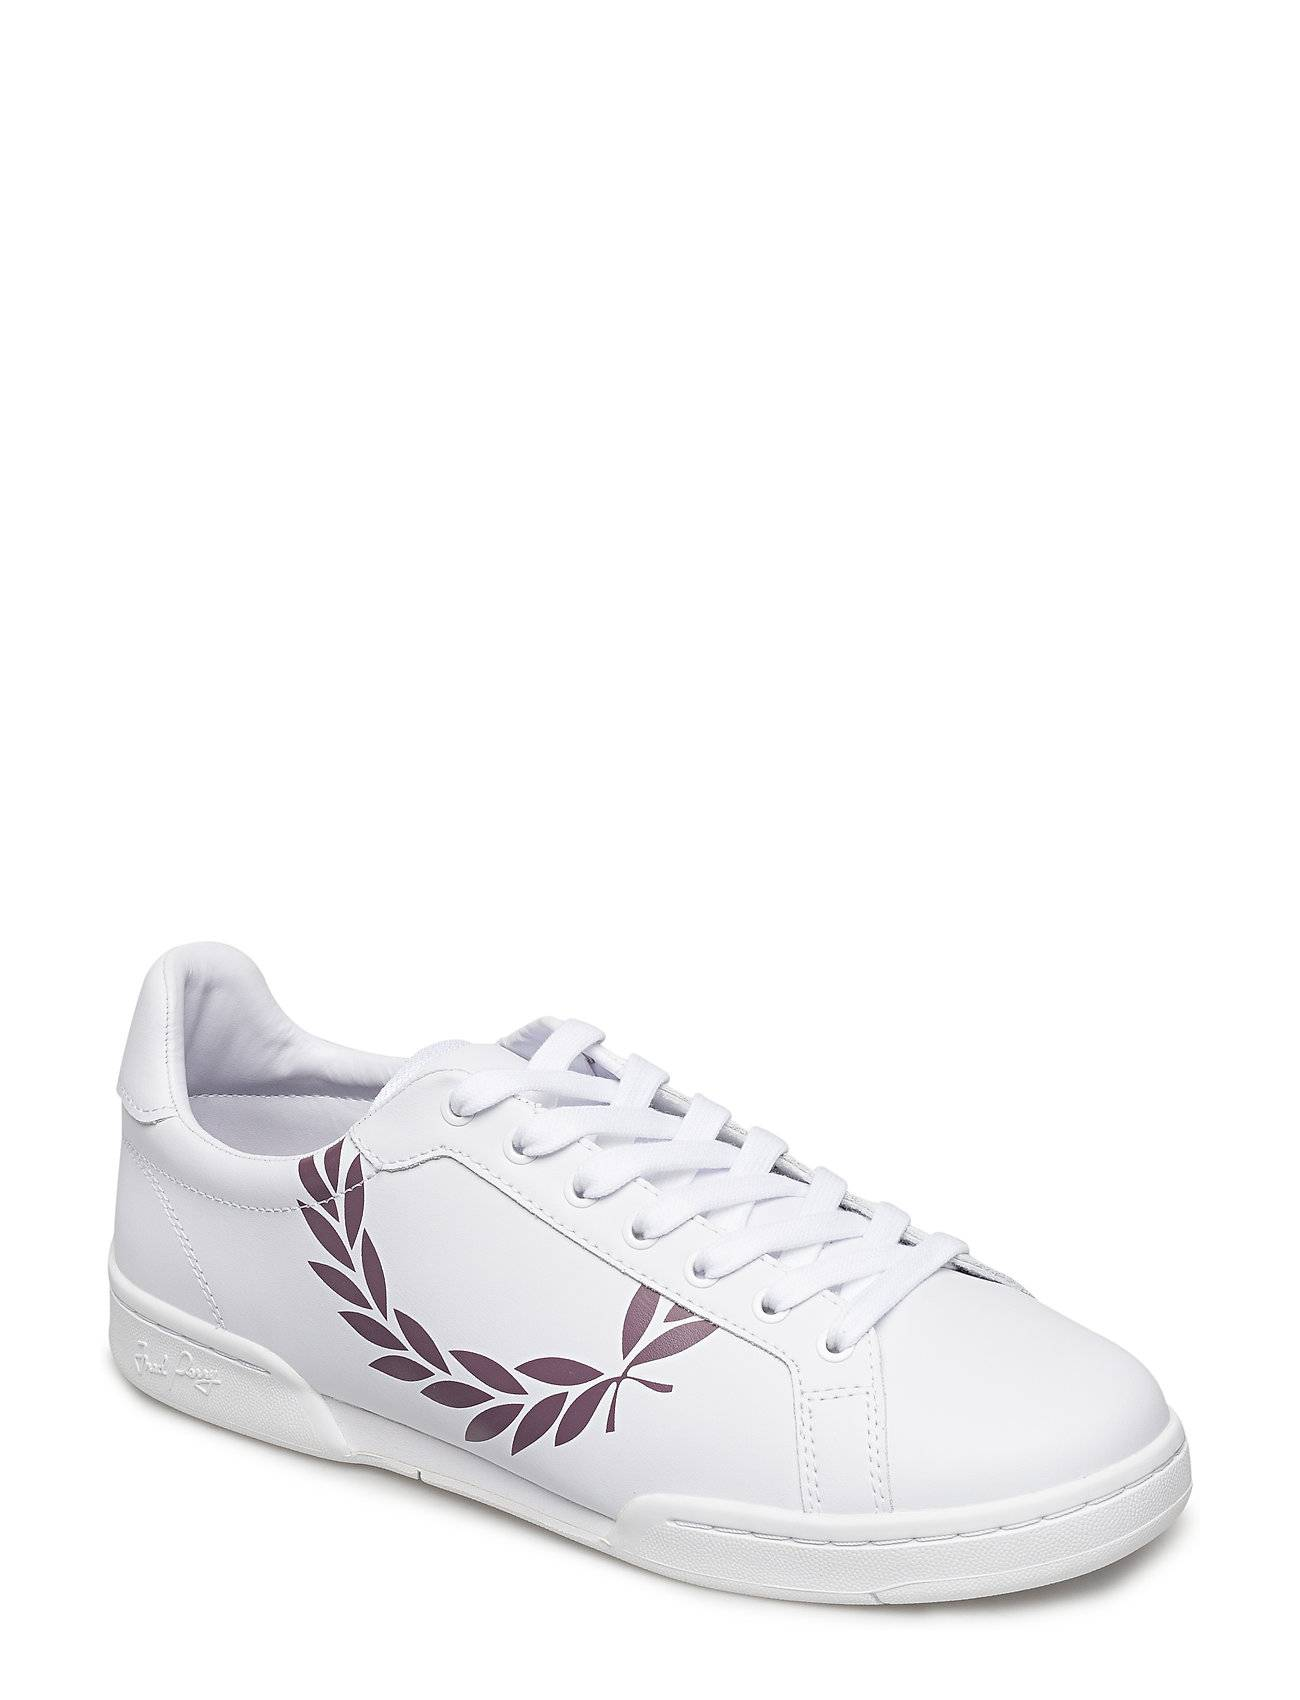 Fred Perry B7222 Printed Laurel Lth